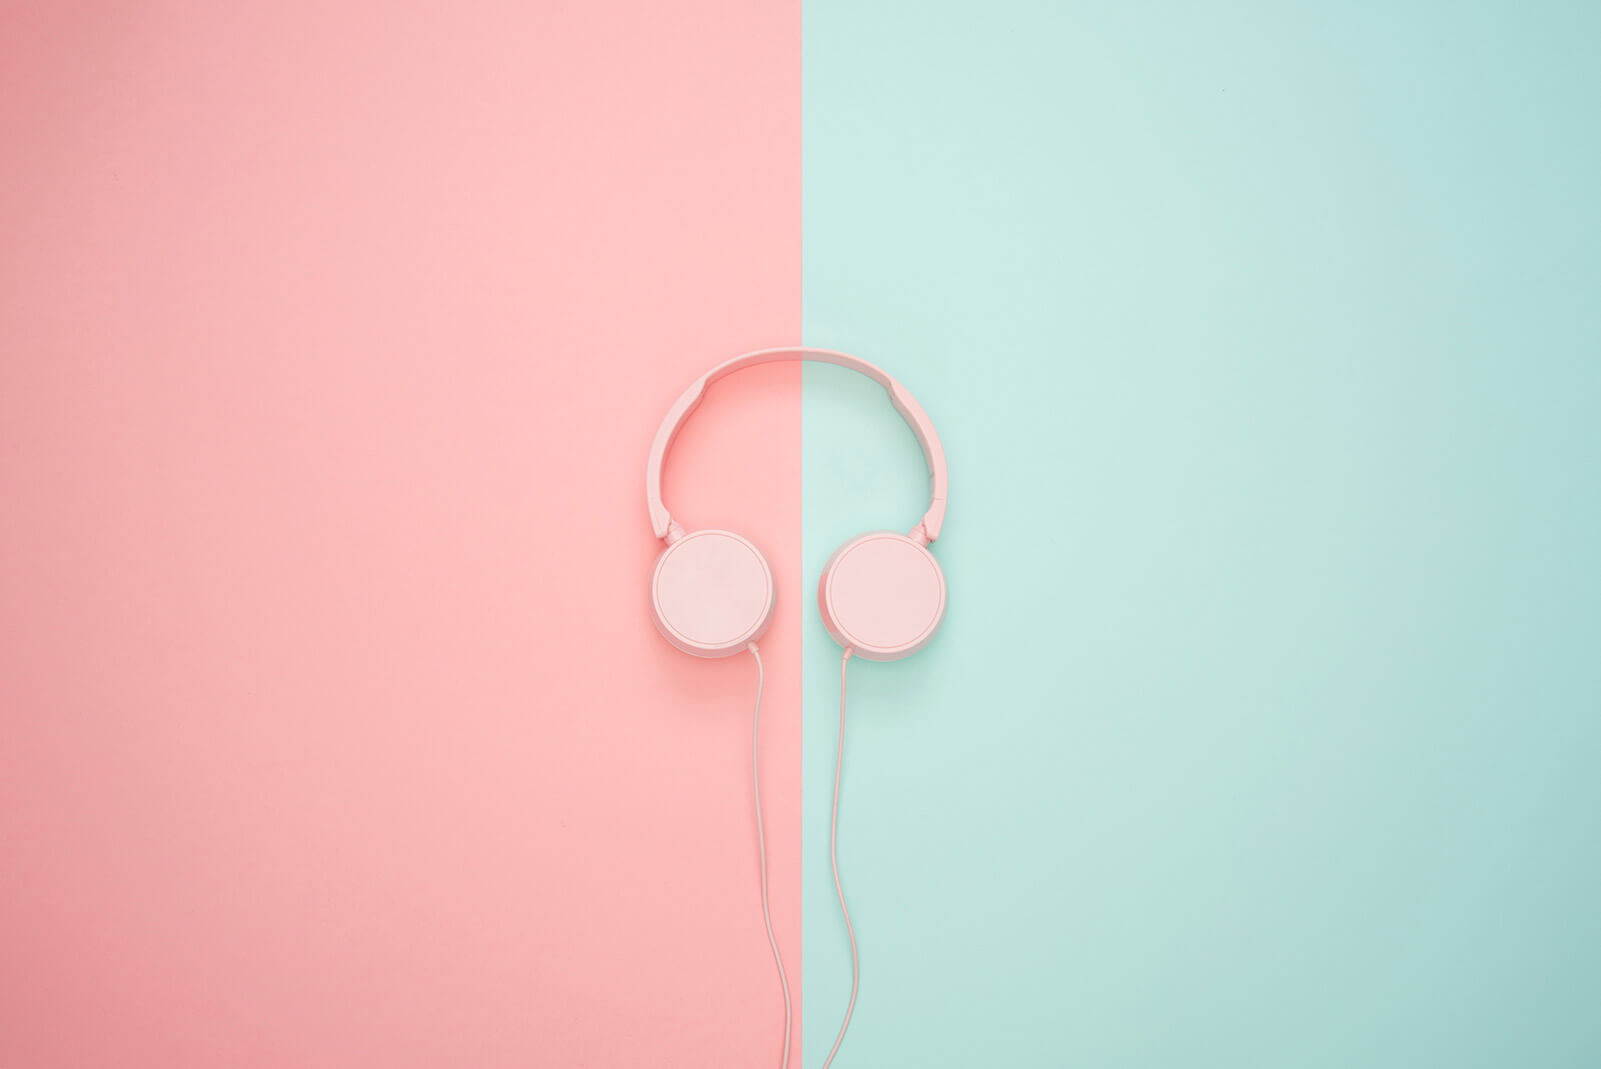 Tinnitus in one ear - what does it mean?